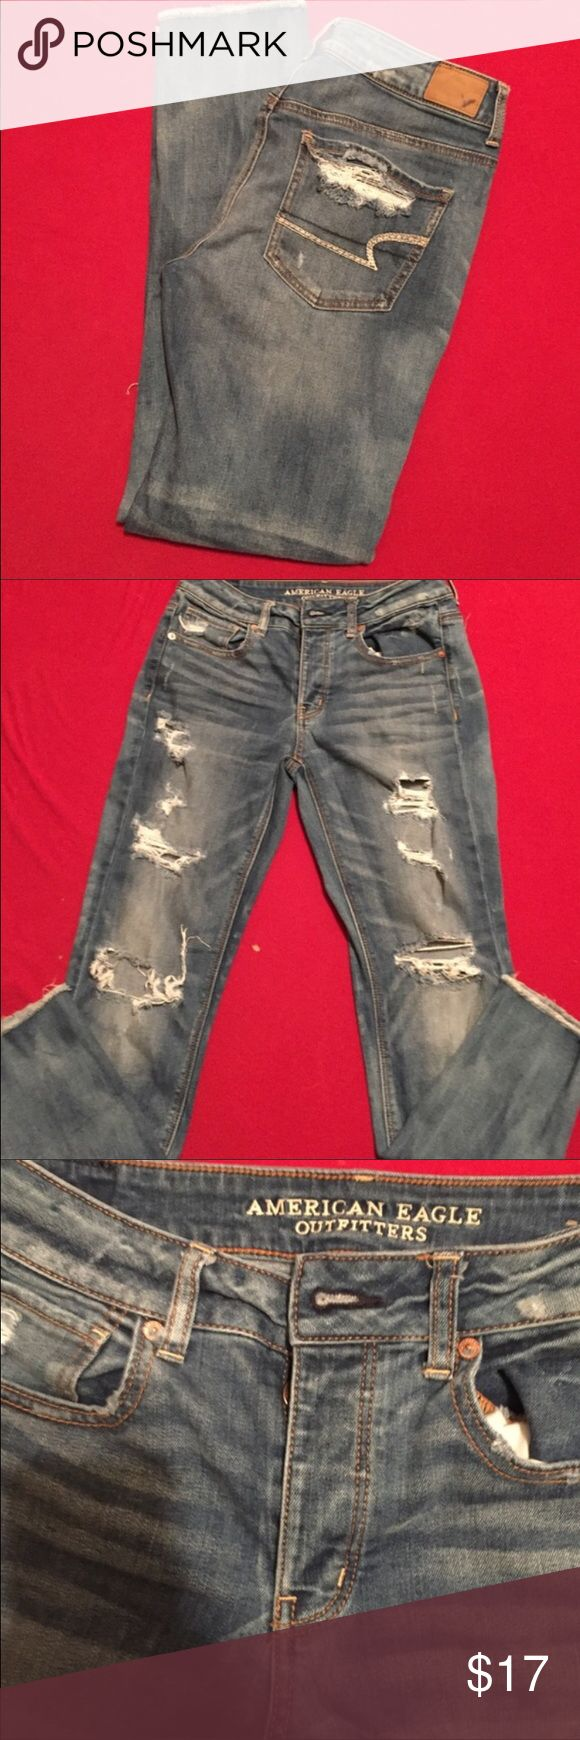 American Eagle Outfitters jeans Great pair of distressed jeans from American Eagle Putfitters. There is distressing down the front and hem is factory frayed also. Goes perfect with a nice top and boots for a edgier look or with your favorite football jersey on game night. All around great pair of jeans. American Eagle Outfitters Jeans Skinny